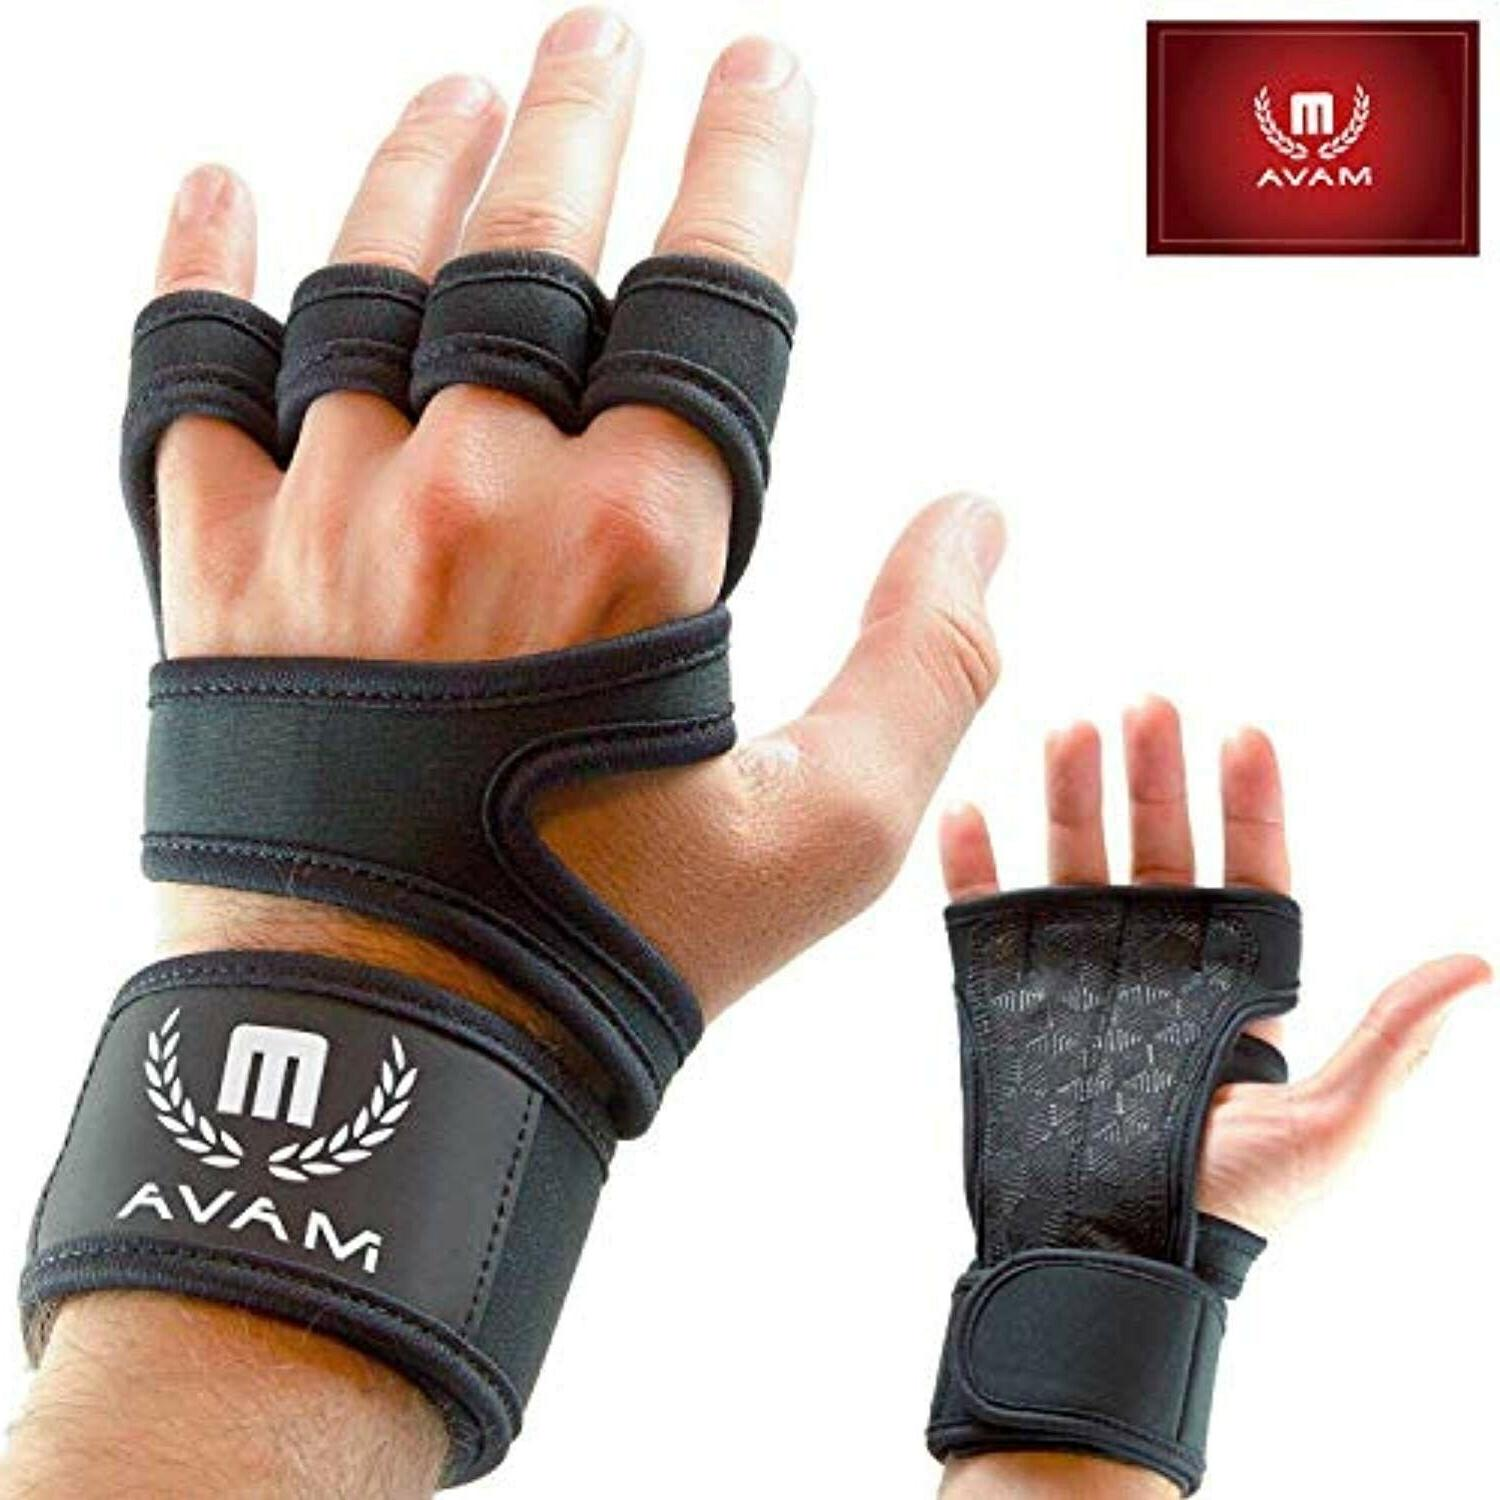 black small cross training gloves with wrist